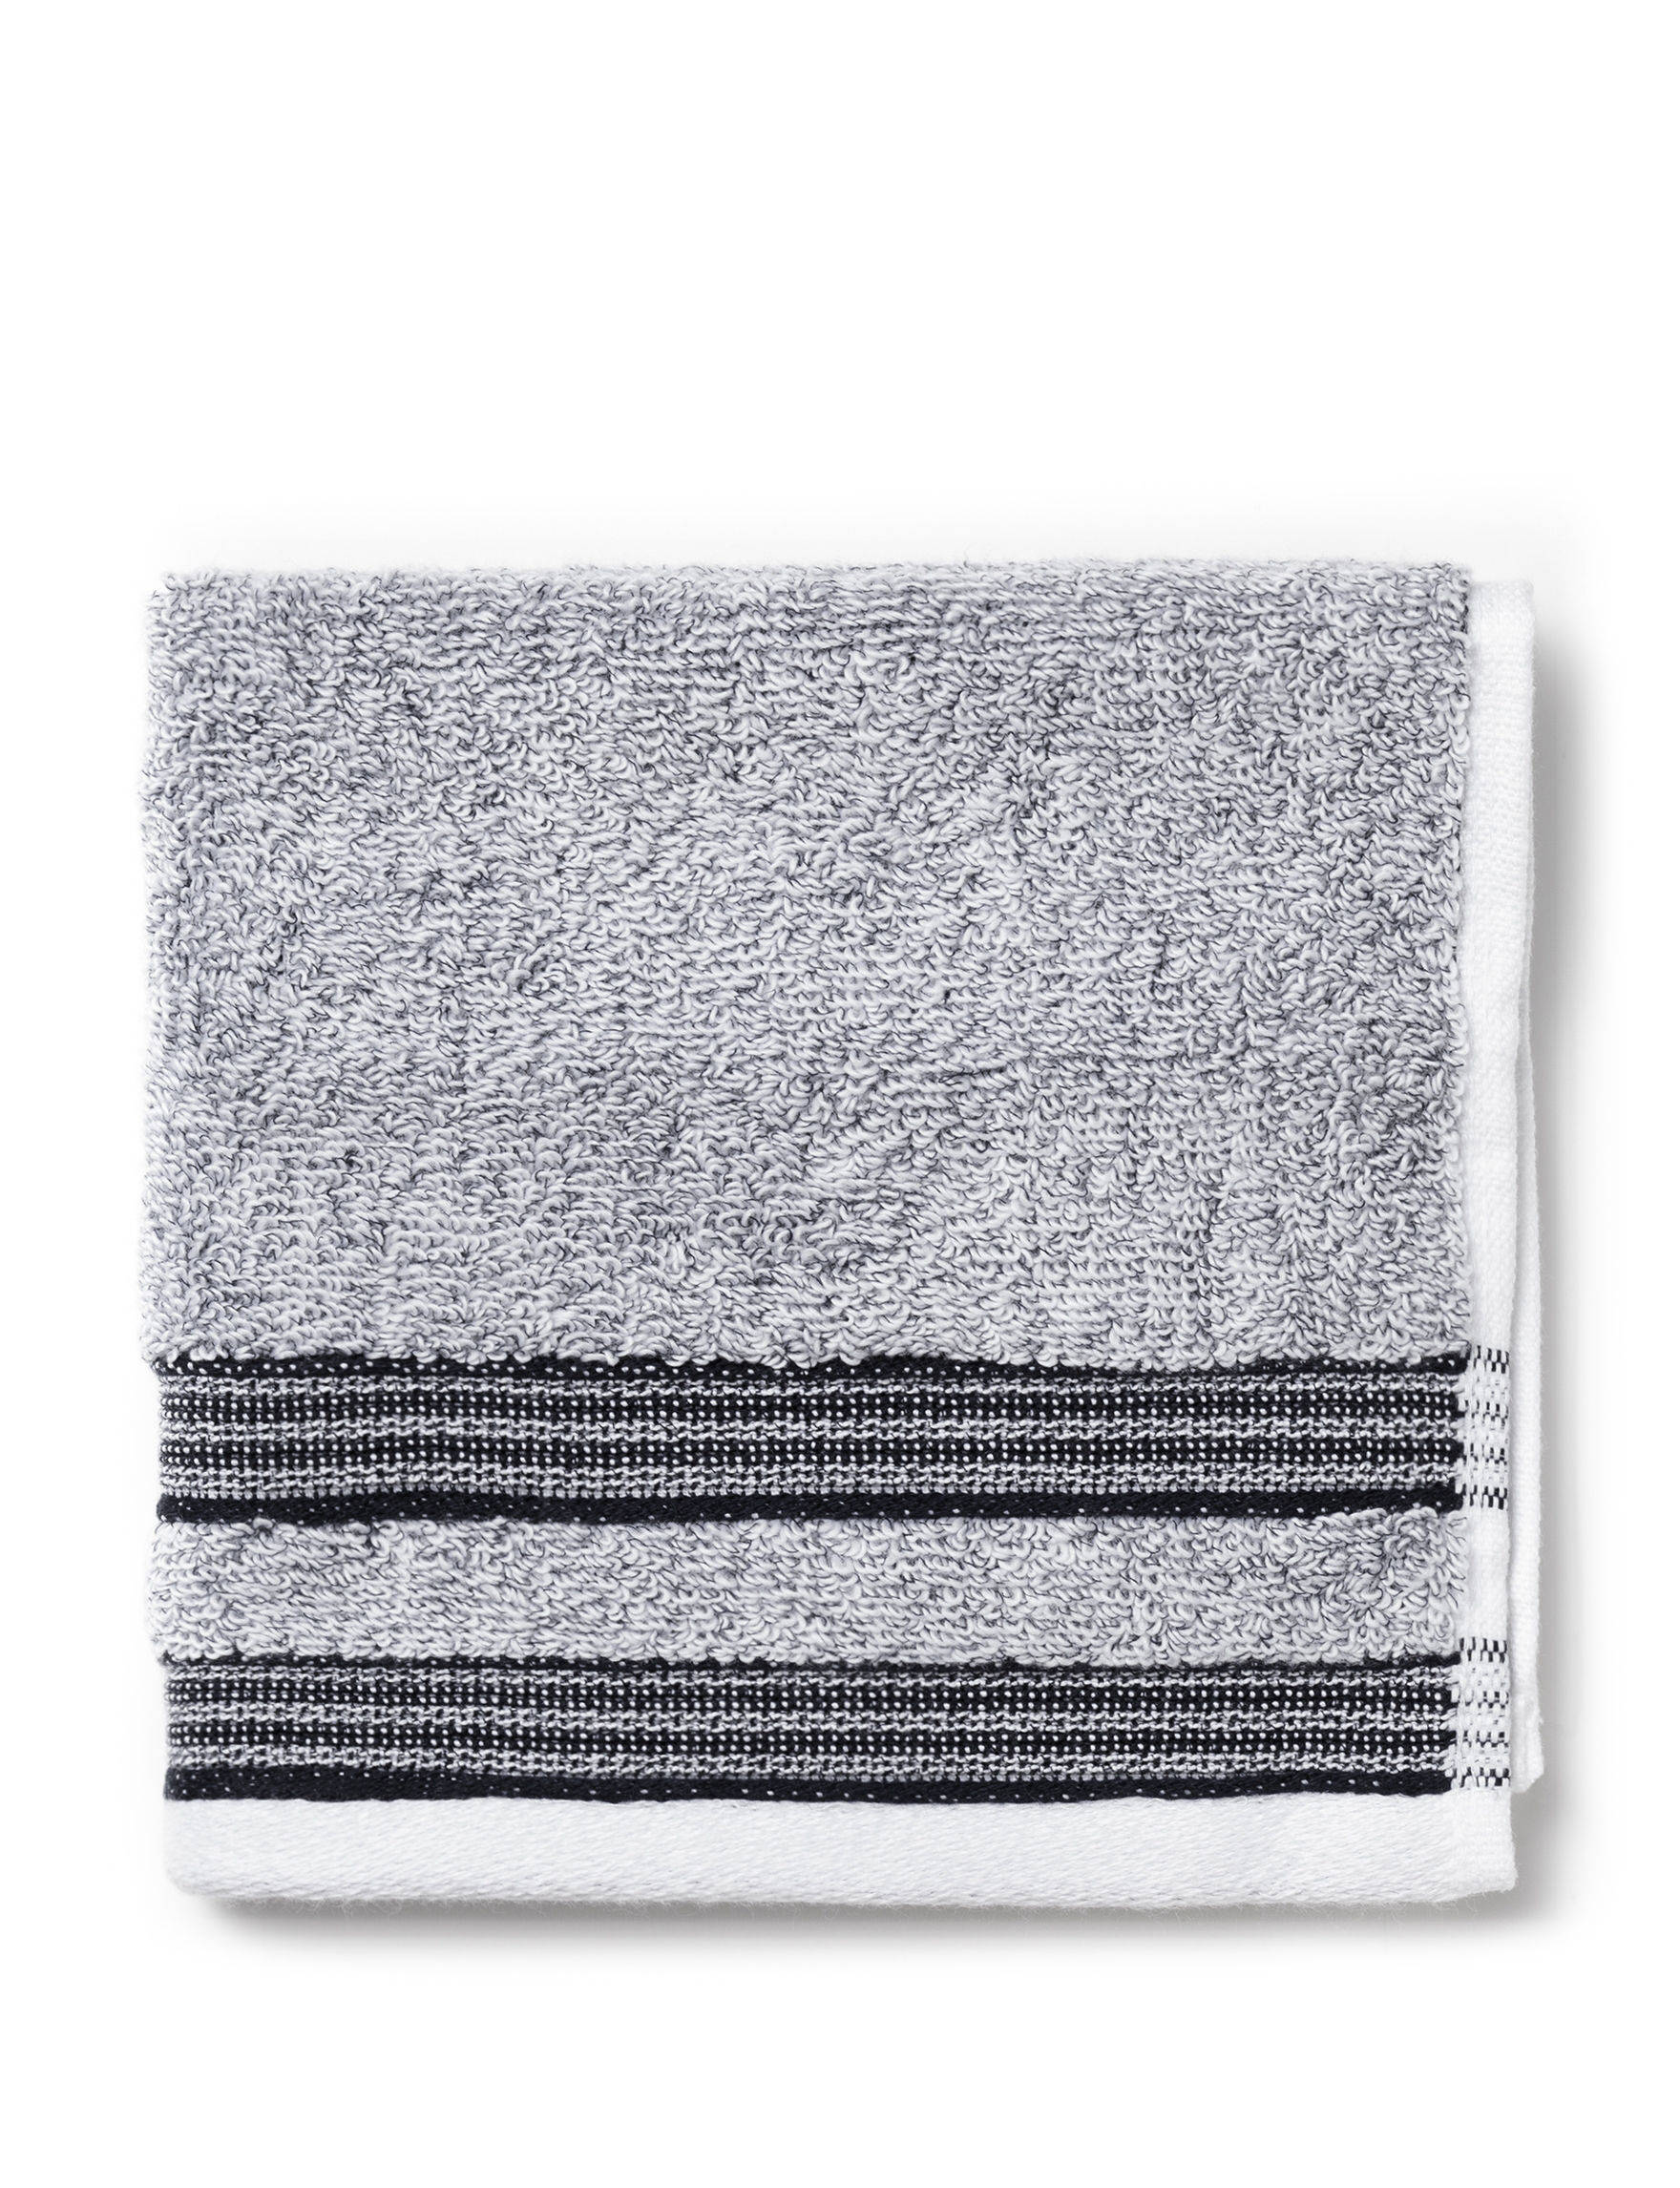 Izod Dark Grey Washcloths Towels